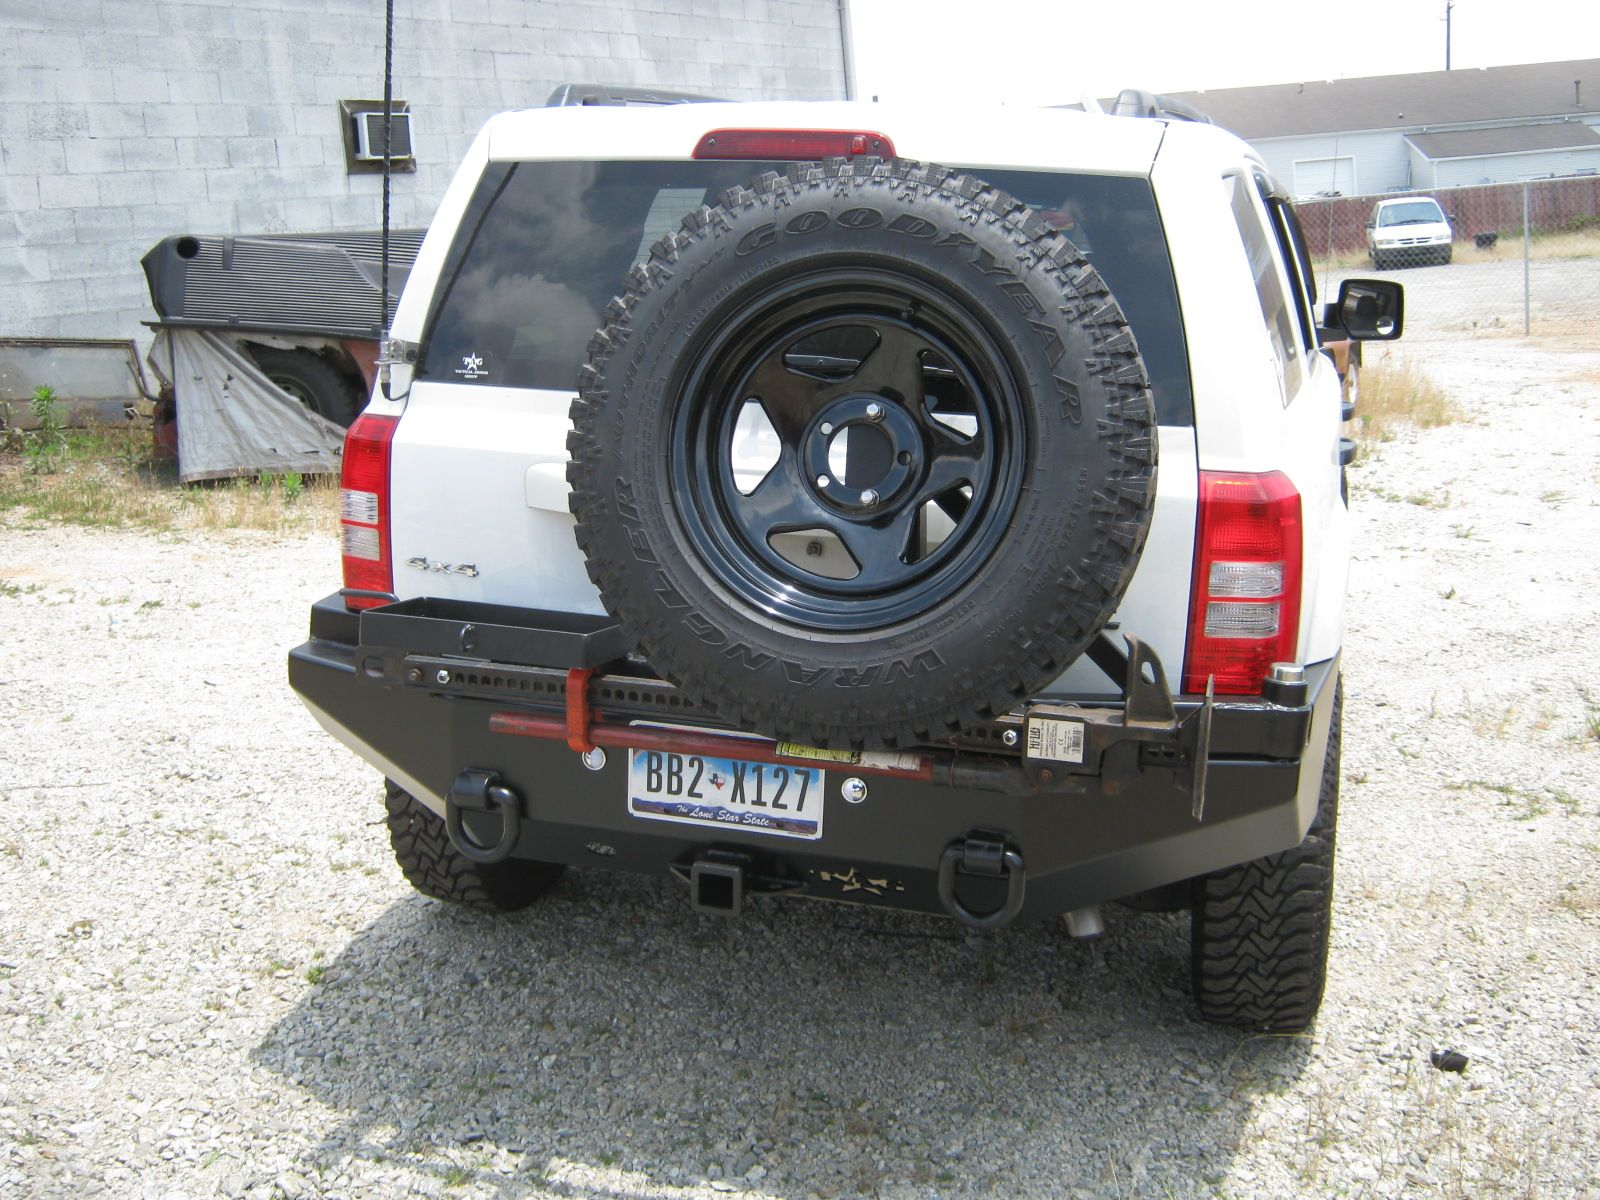 Multicarrier Jeep Patriot Tactical Armor Group Store Jeep Patriot Jeep Patriot Accessories Jeep Patriot Lifted